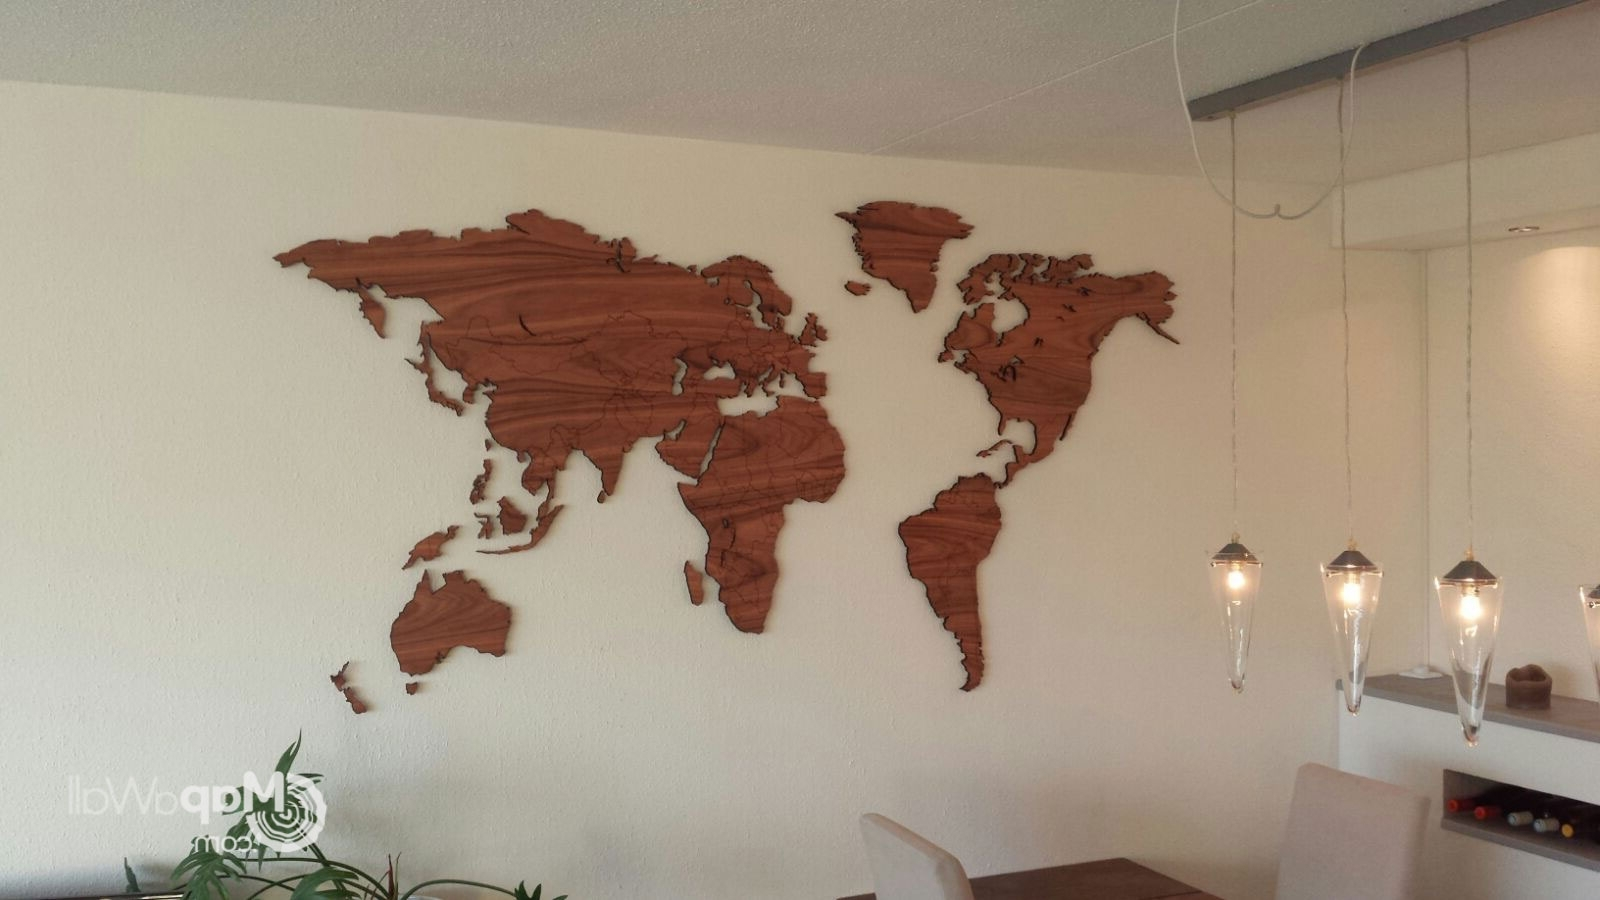 Famous Wooden World Map Wall Art, Wooden World Map Wall Art In Wooden World Map Wall Art (View 3 of 15)